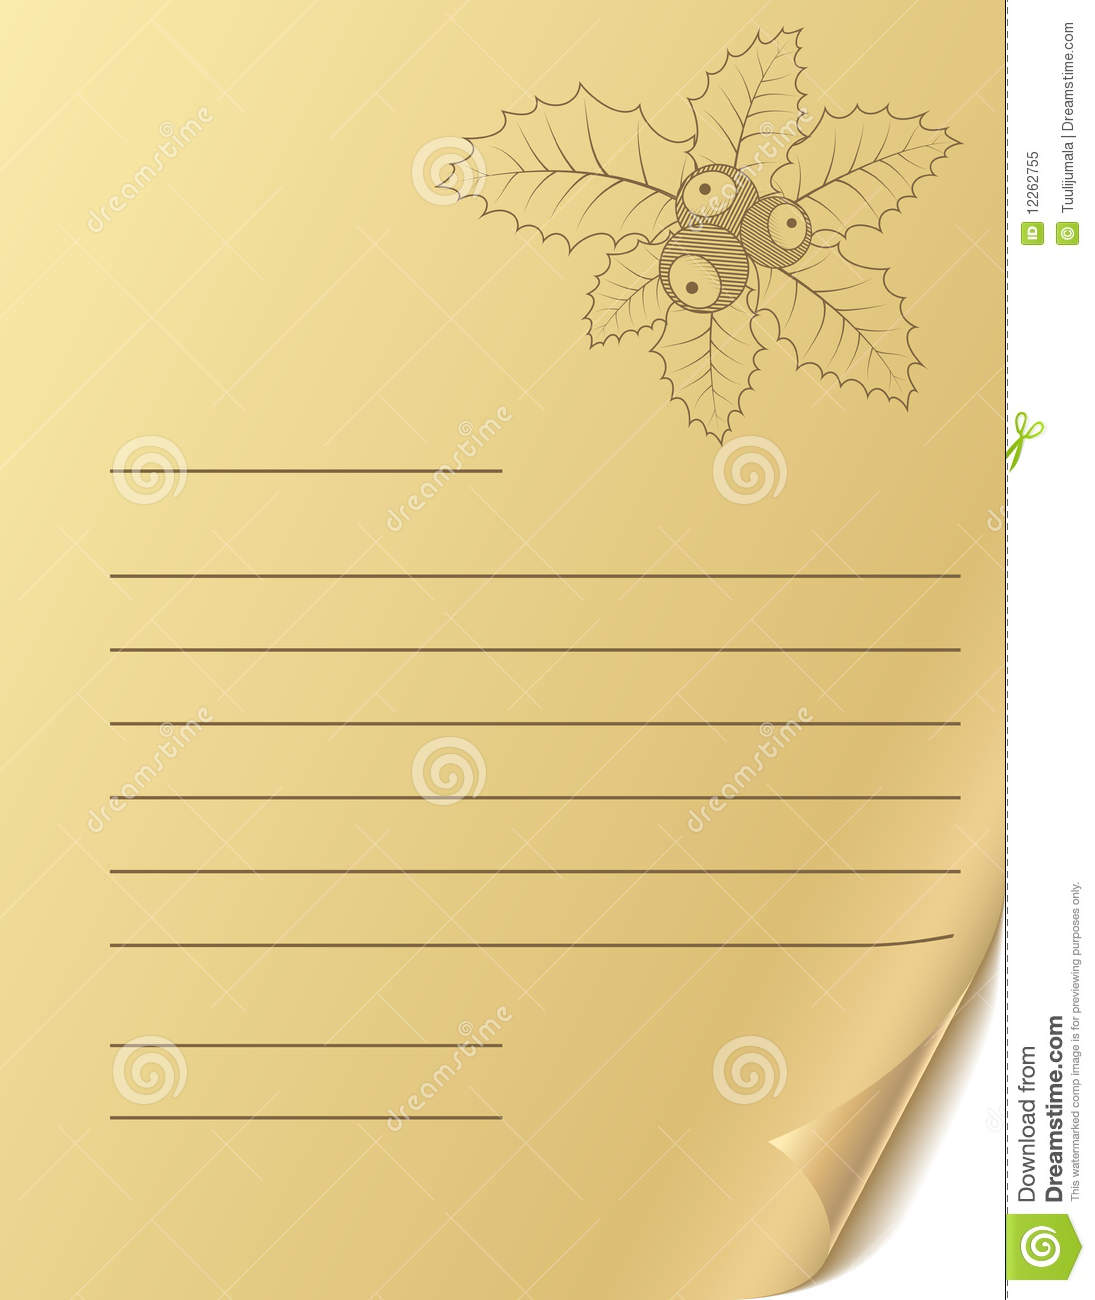 Template Greeting Card Royalty Free Stock Image: Christmas Greeting Letter Royalty Free Stock Photo